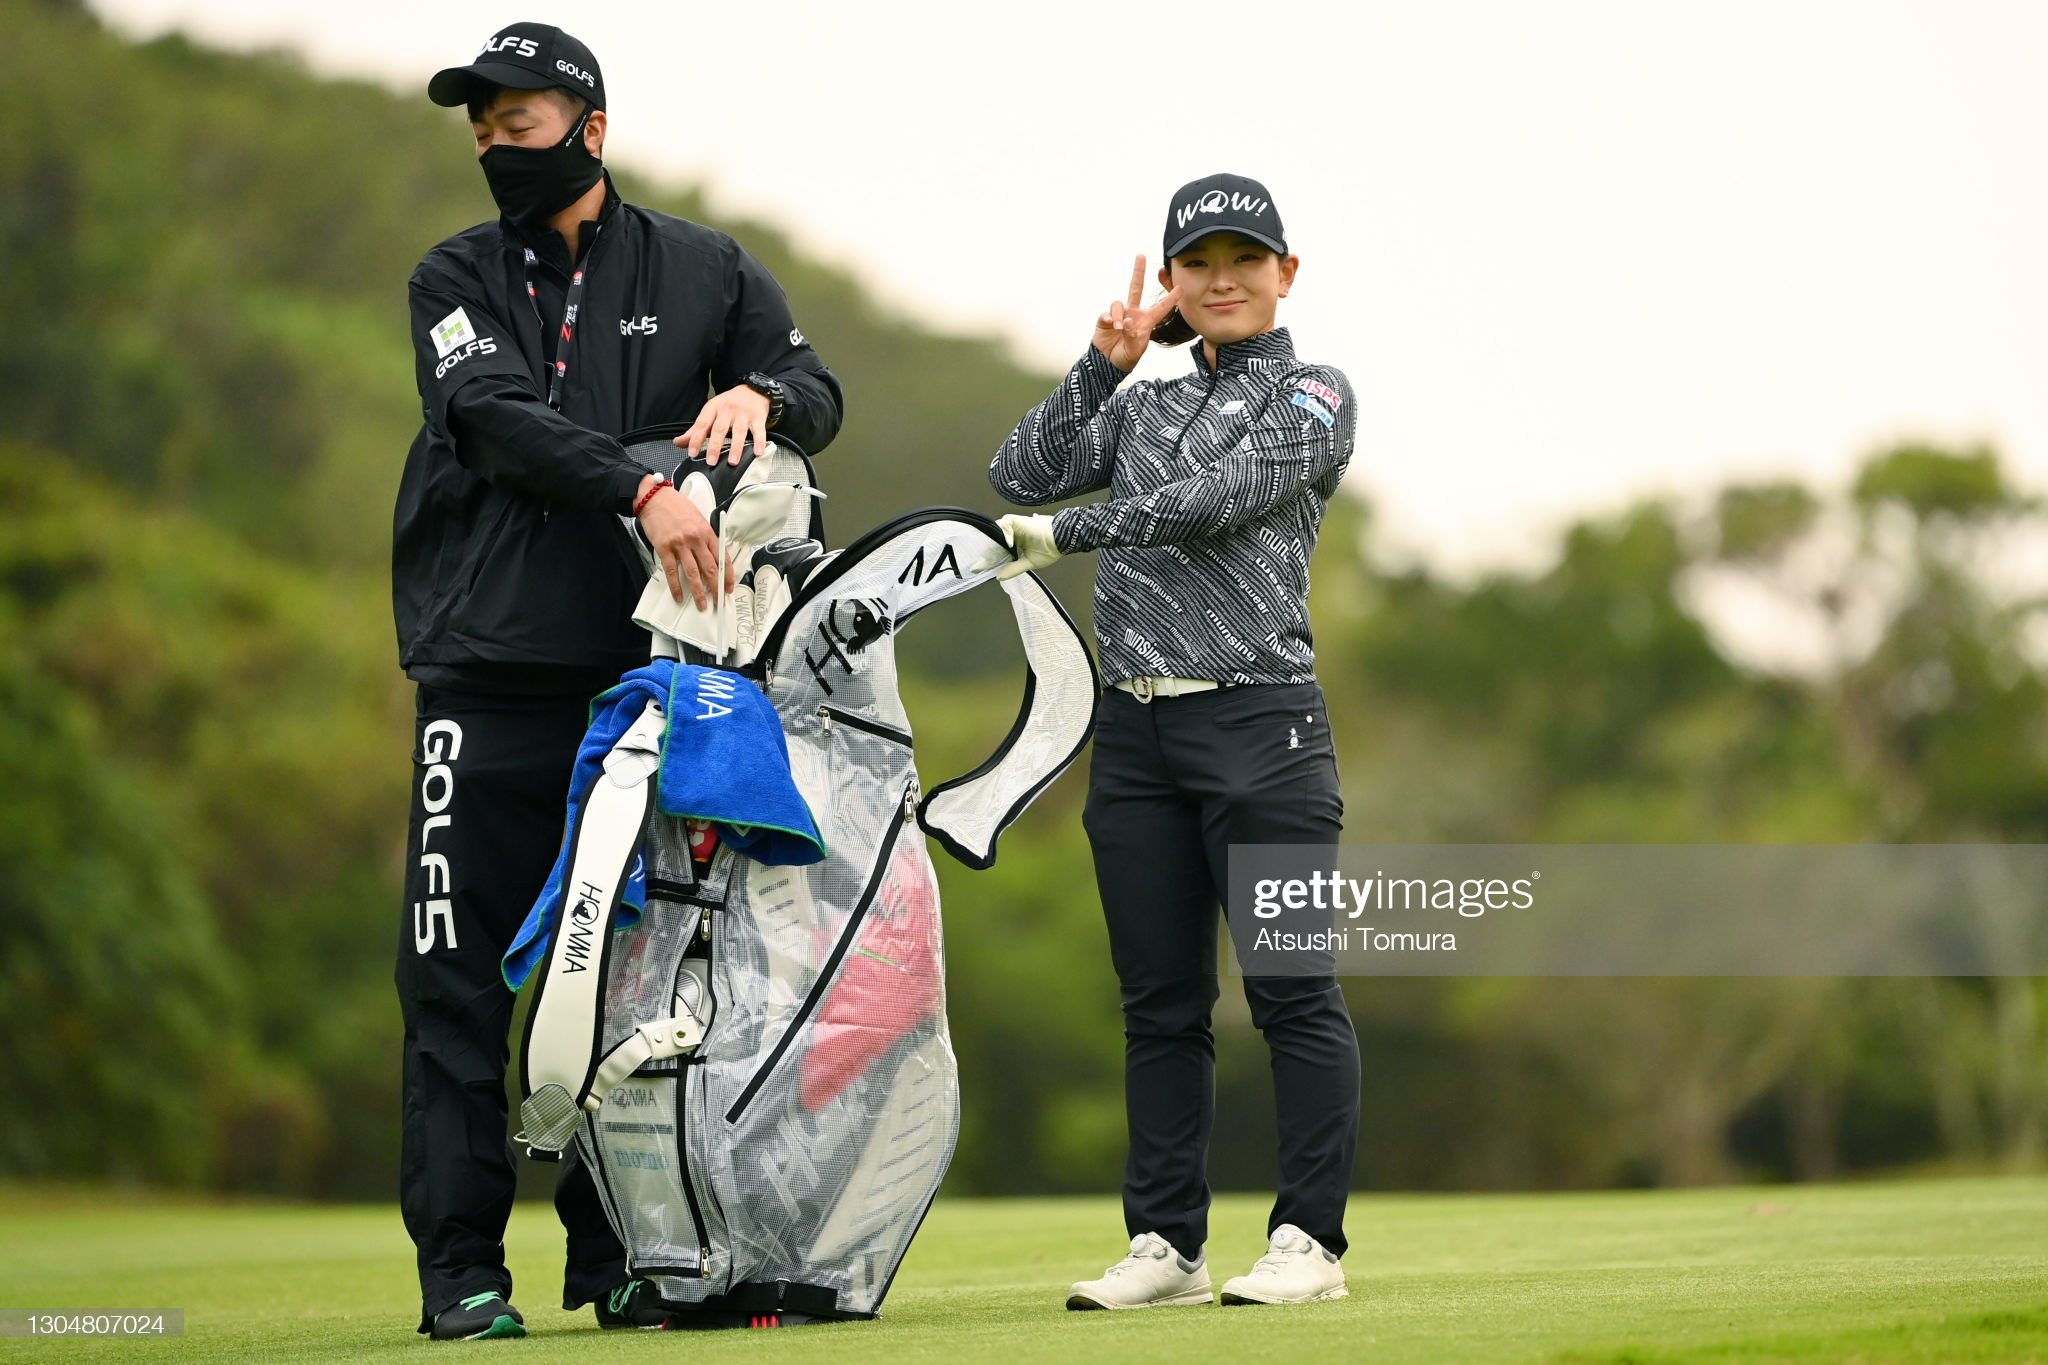 https://media.gettyimages.com/photos/momo-yoshikawa-of-japan-poses-on-the-11th-hole-during-the-practice-picture-id1304807024?s=2048x2048